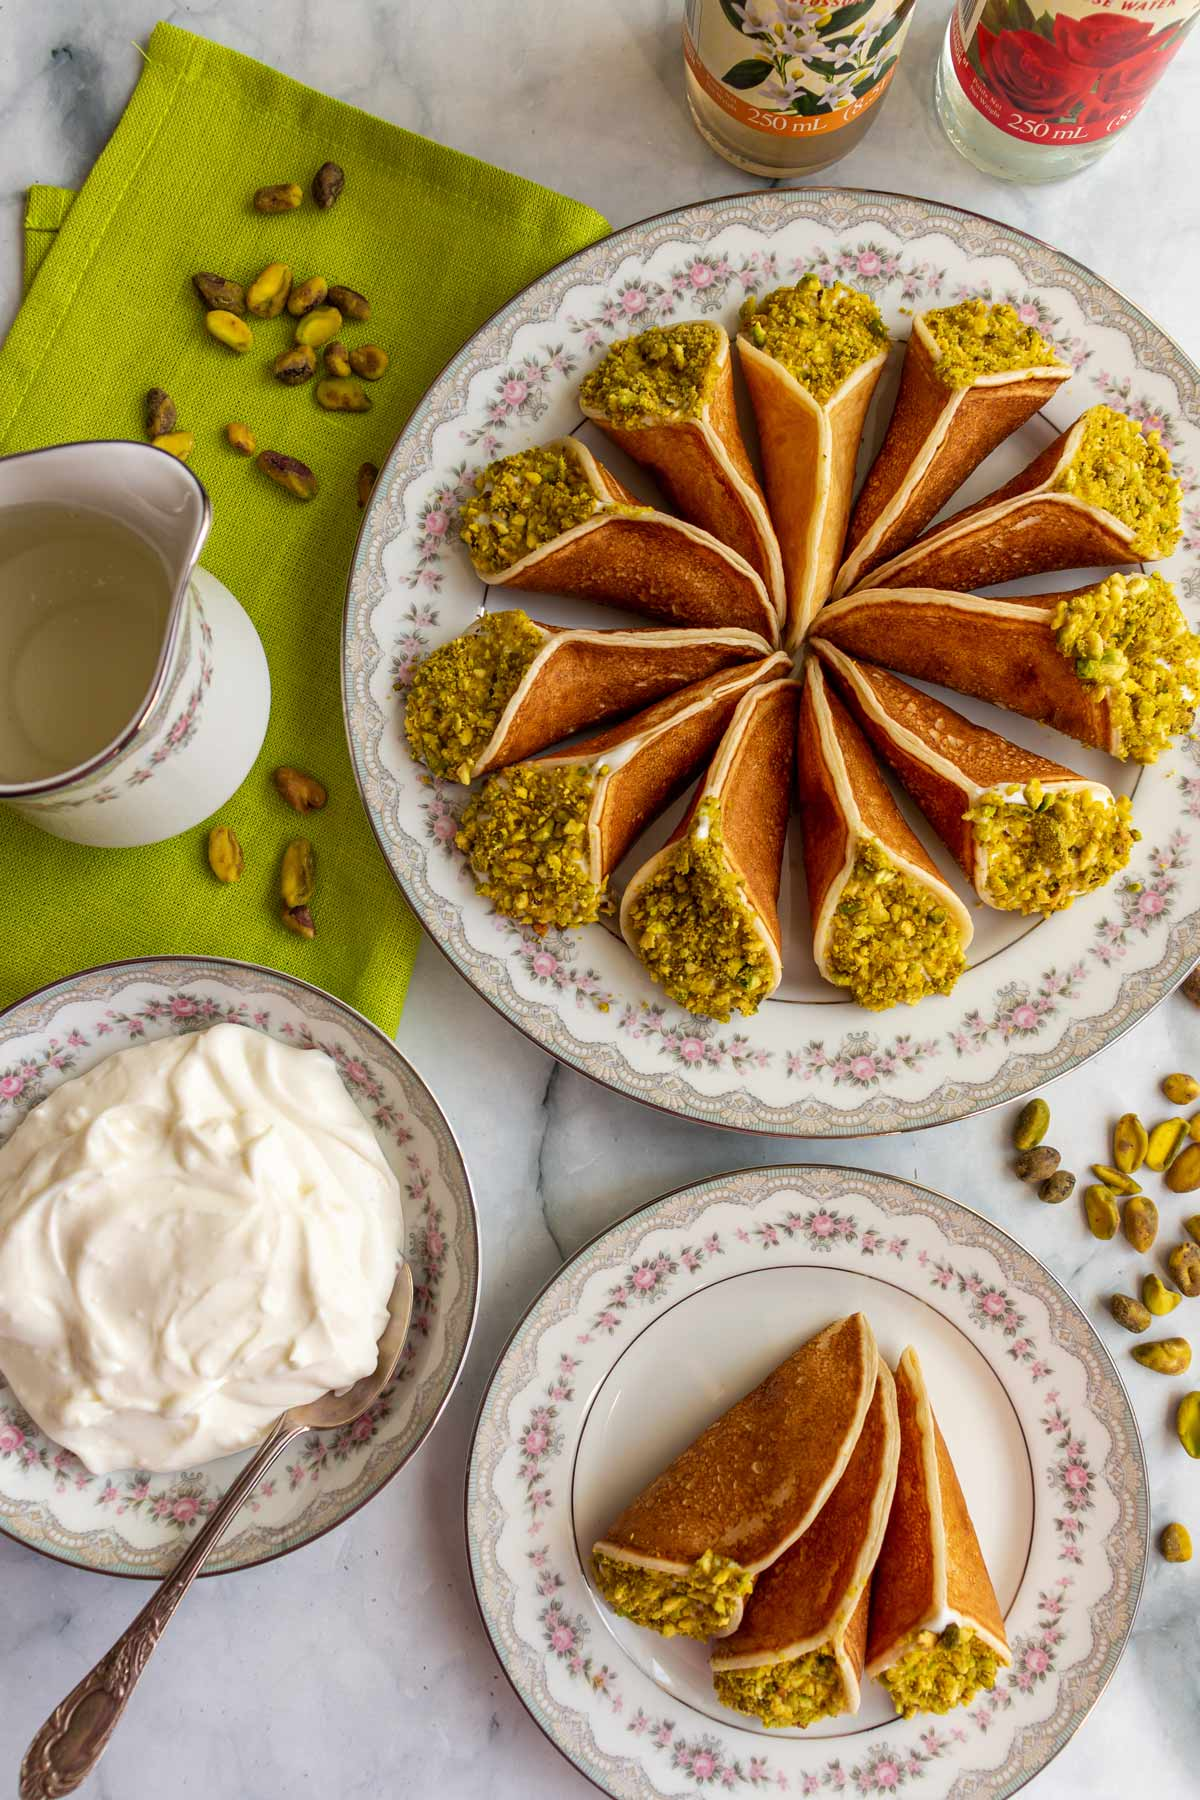 Two plates of atayef, a bowl of ashta cream, pitcher of syrup and scattered pistachios.